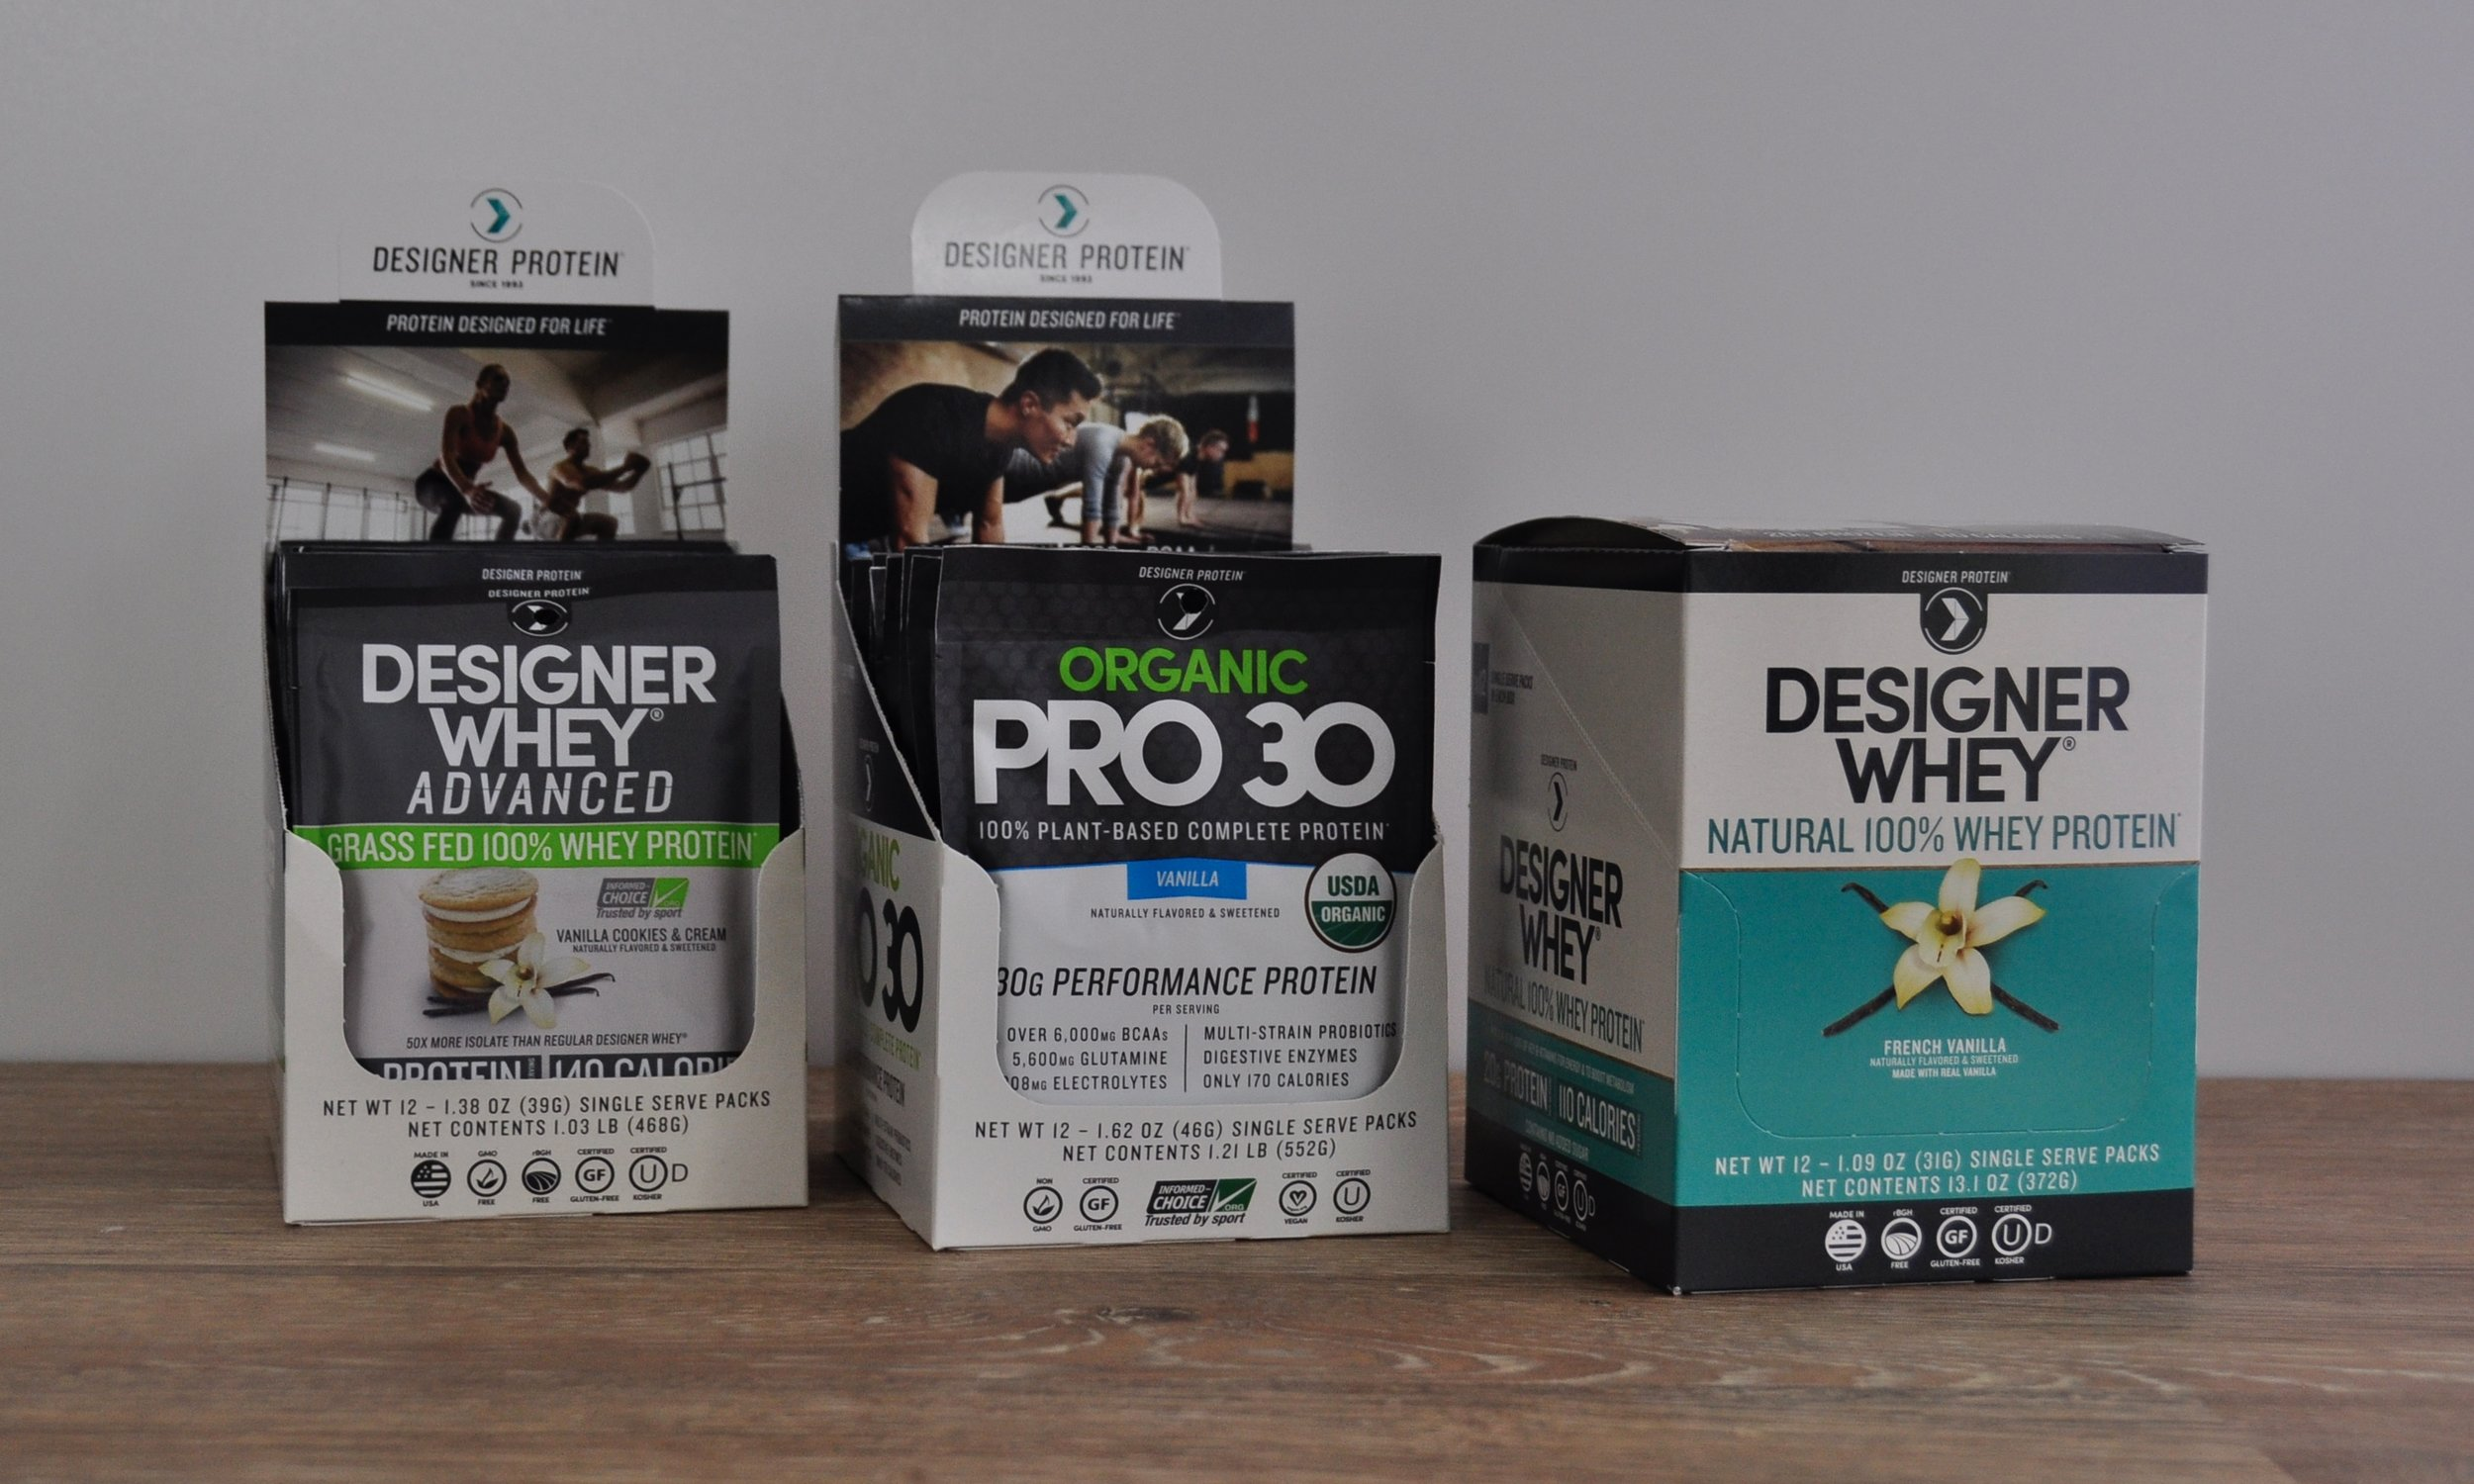 Single Packs & Boxes - in charge of adapting from original labels to fit packet dimensions and designing layout of boxes.